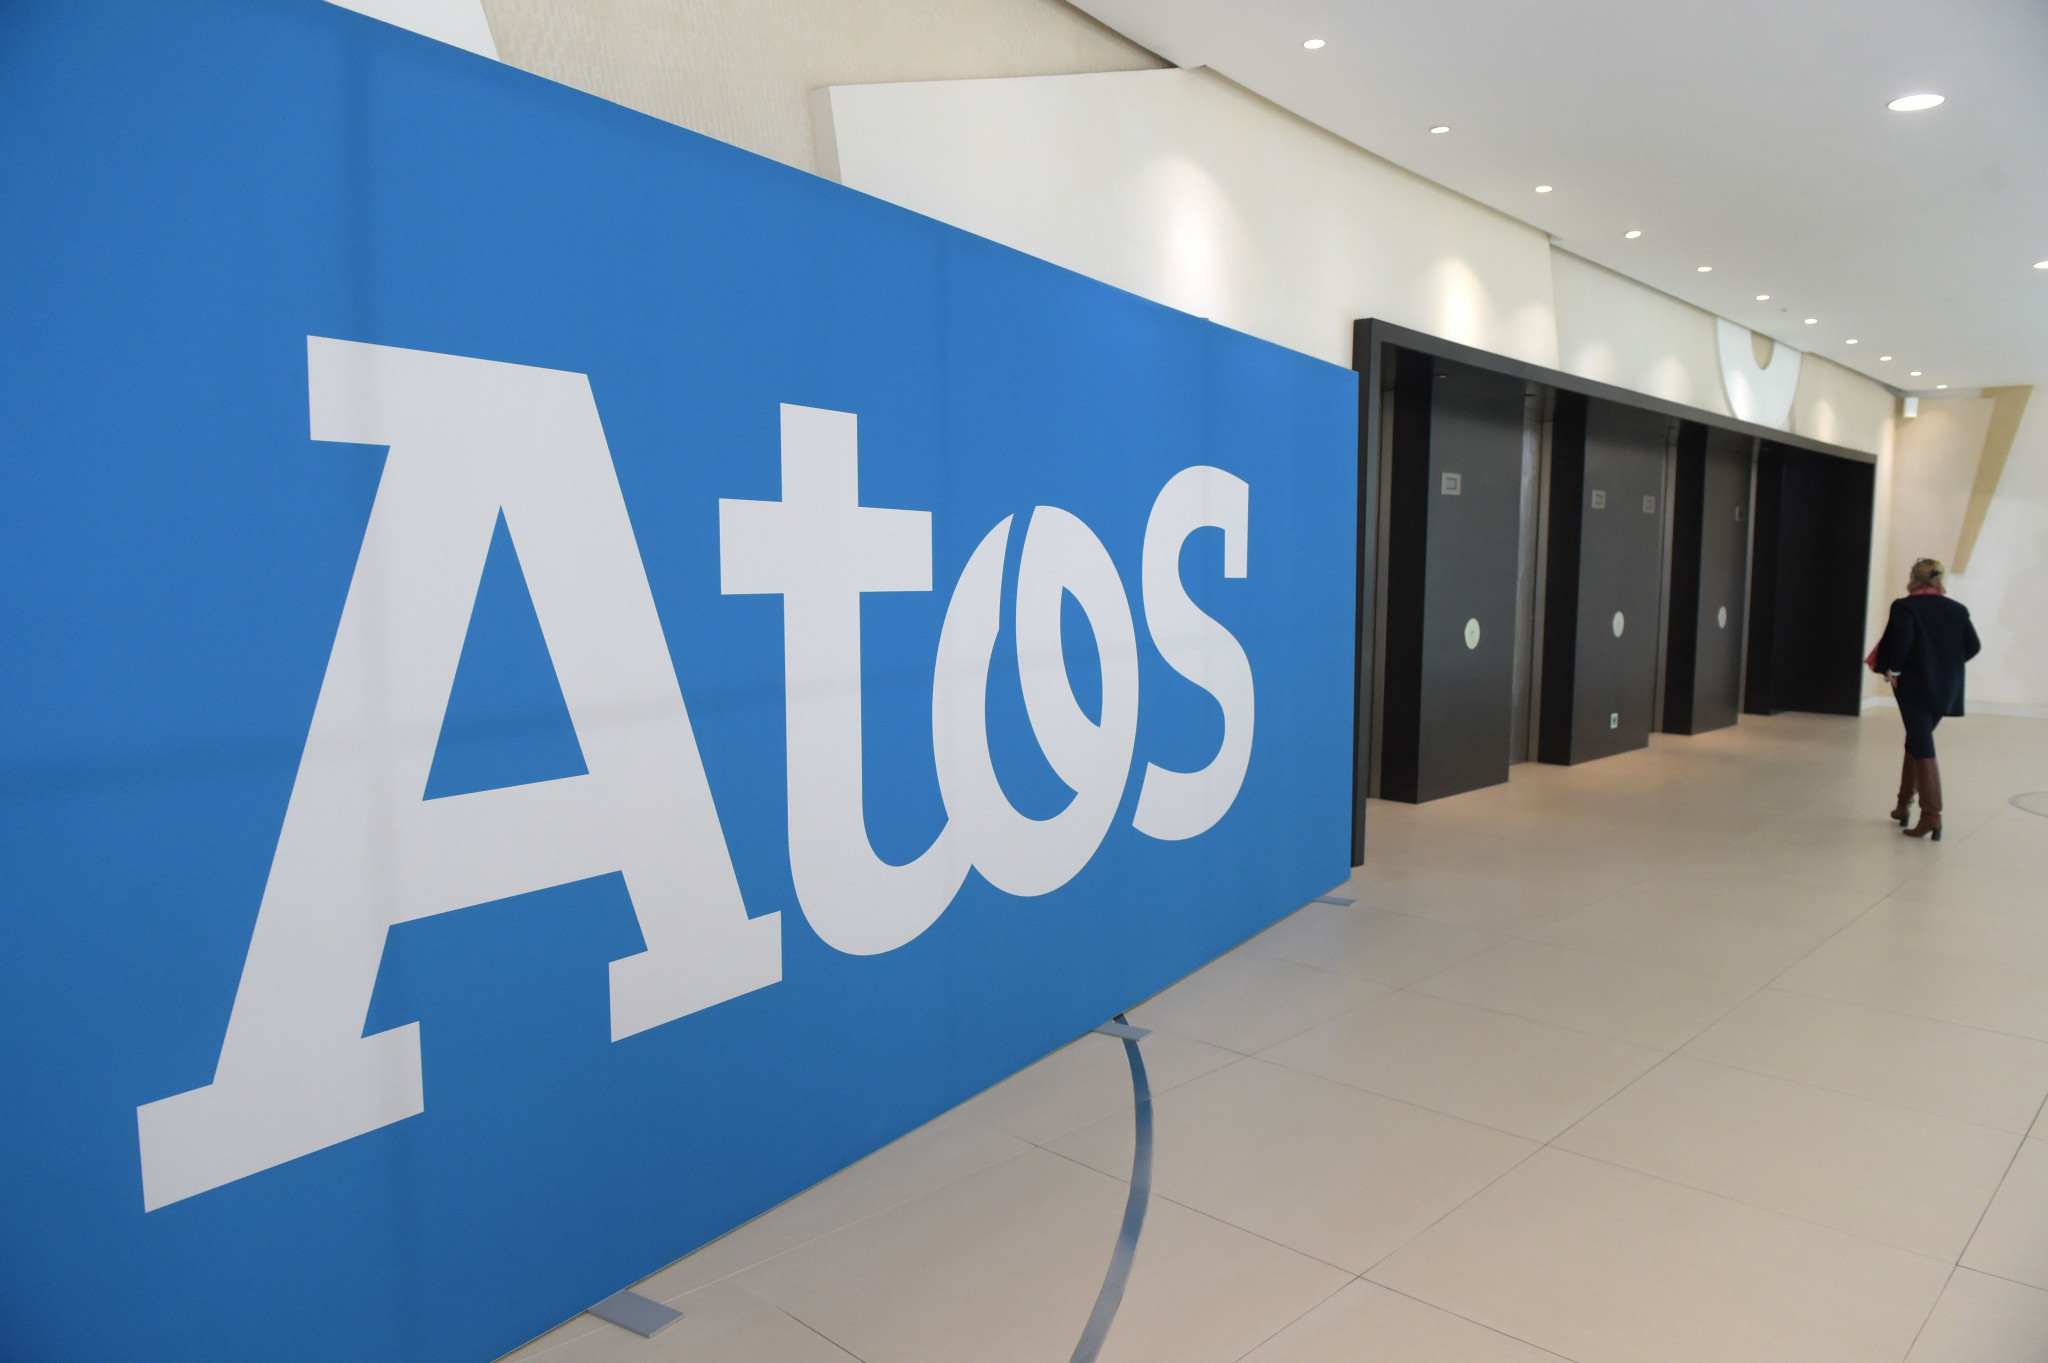 TOP sponsor Atos enters EOC partnership covering 2023 and 2027 European Games